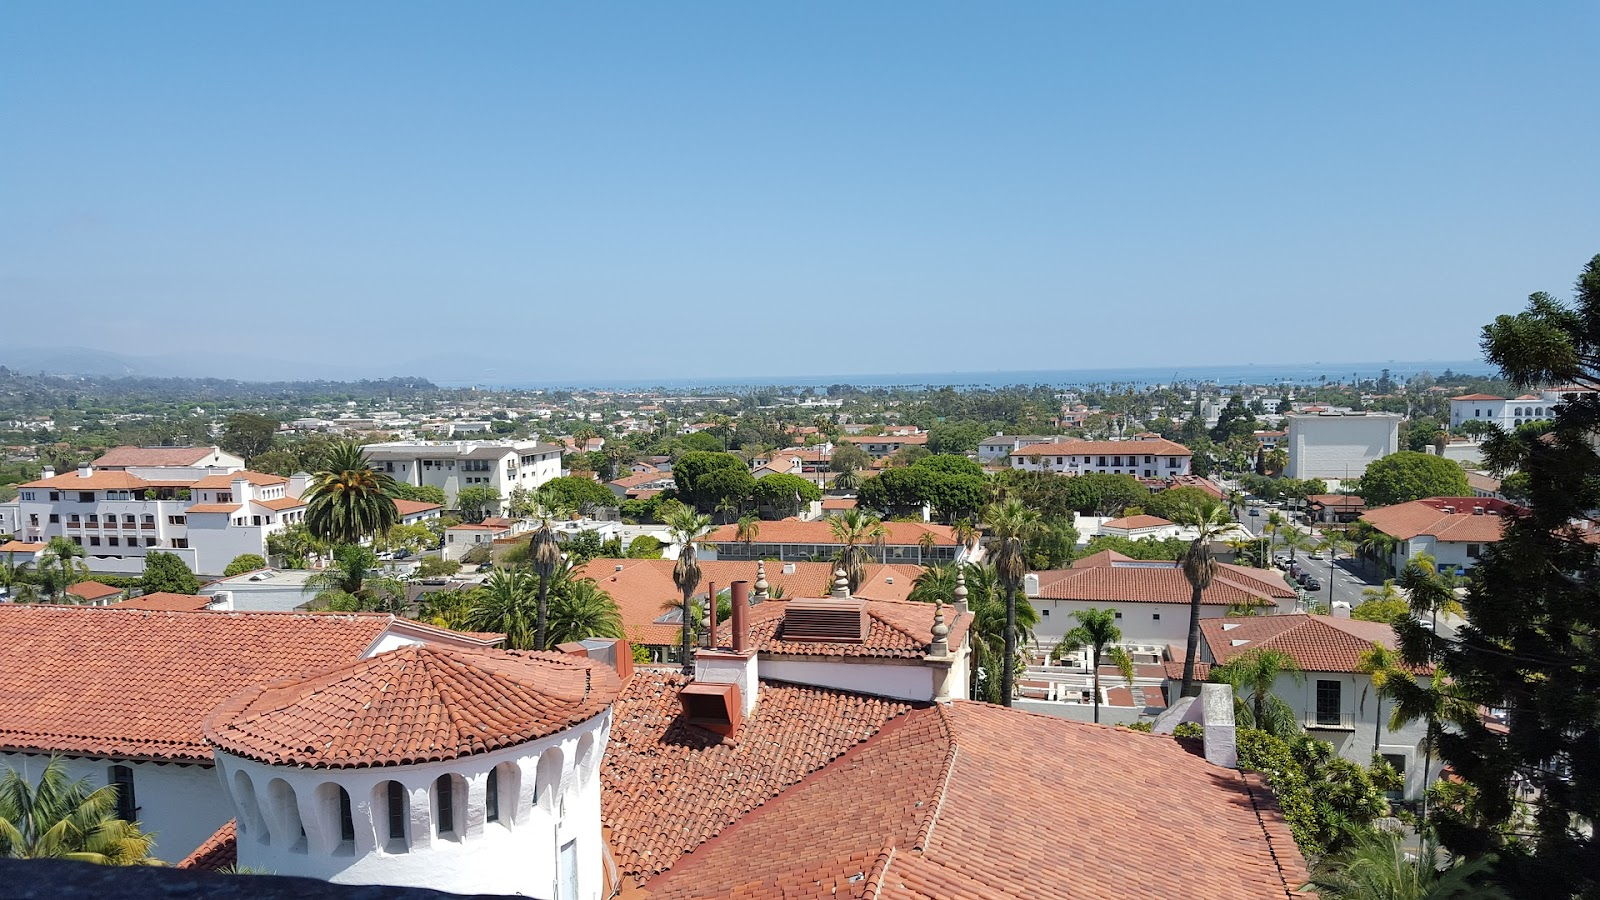 santa barbara whitewashed buildings and tile rooftops and green palm trees with ocean in background california